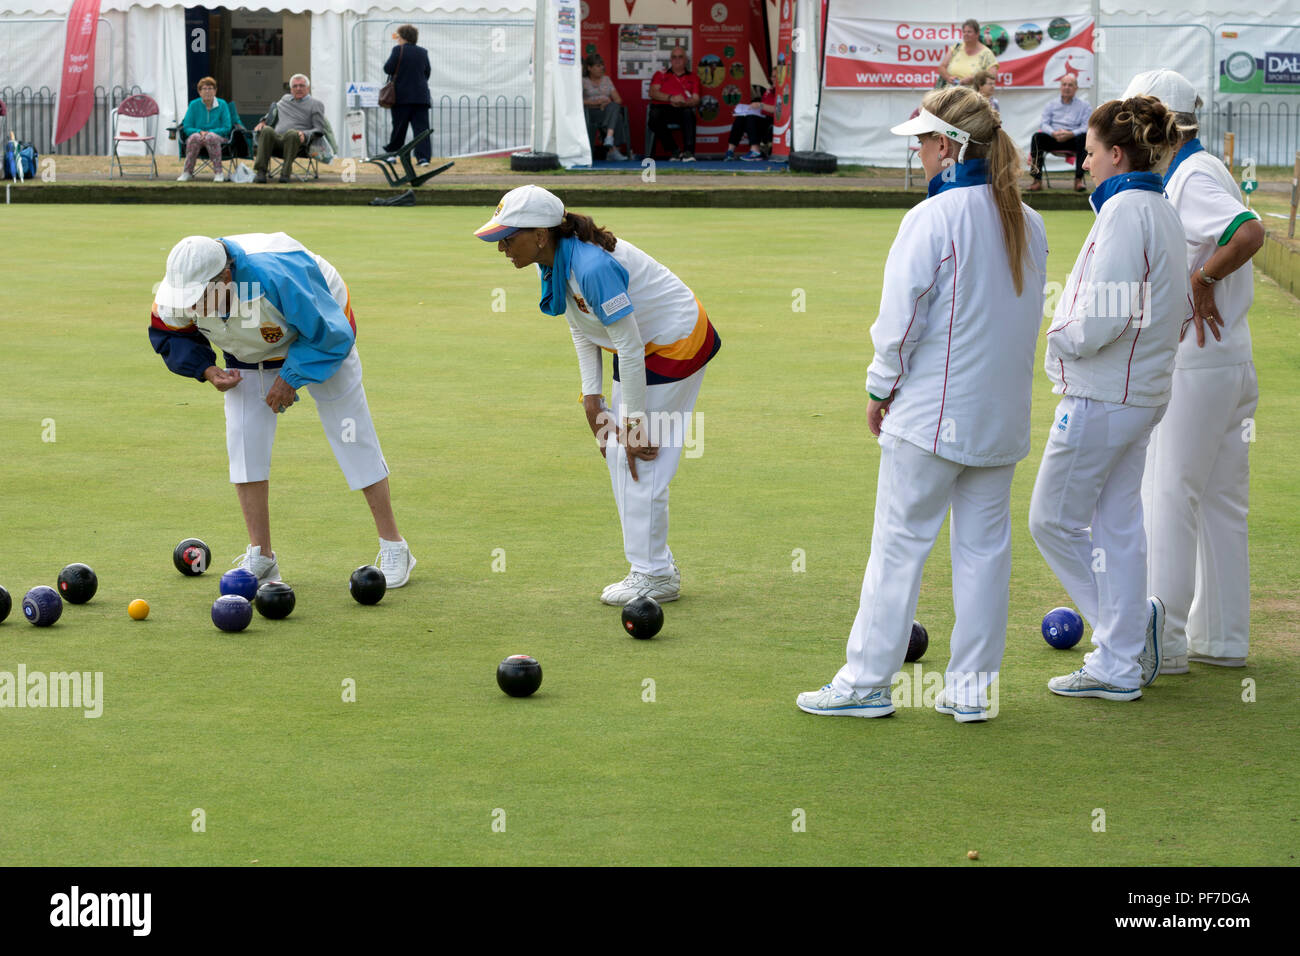 The national women`s lawn bowls championships, Leamington Spa, UK - Stock Image